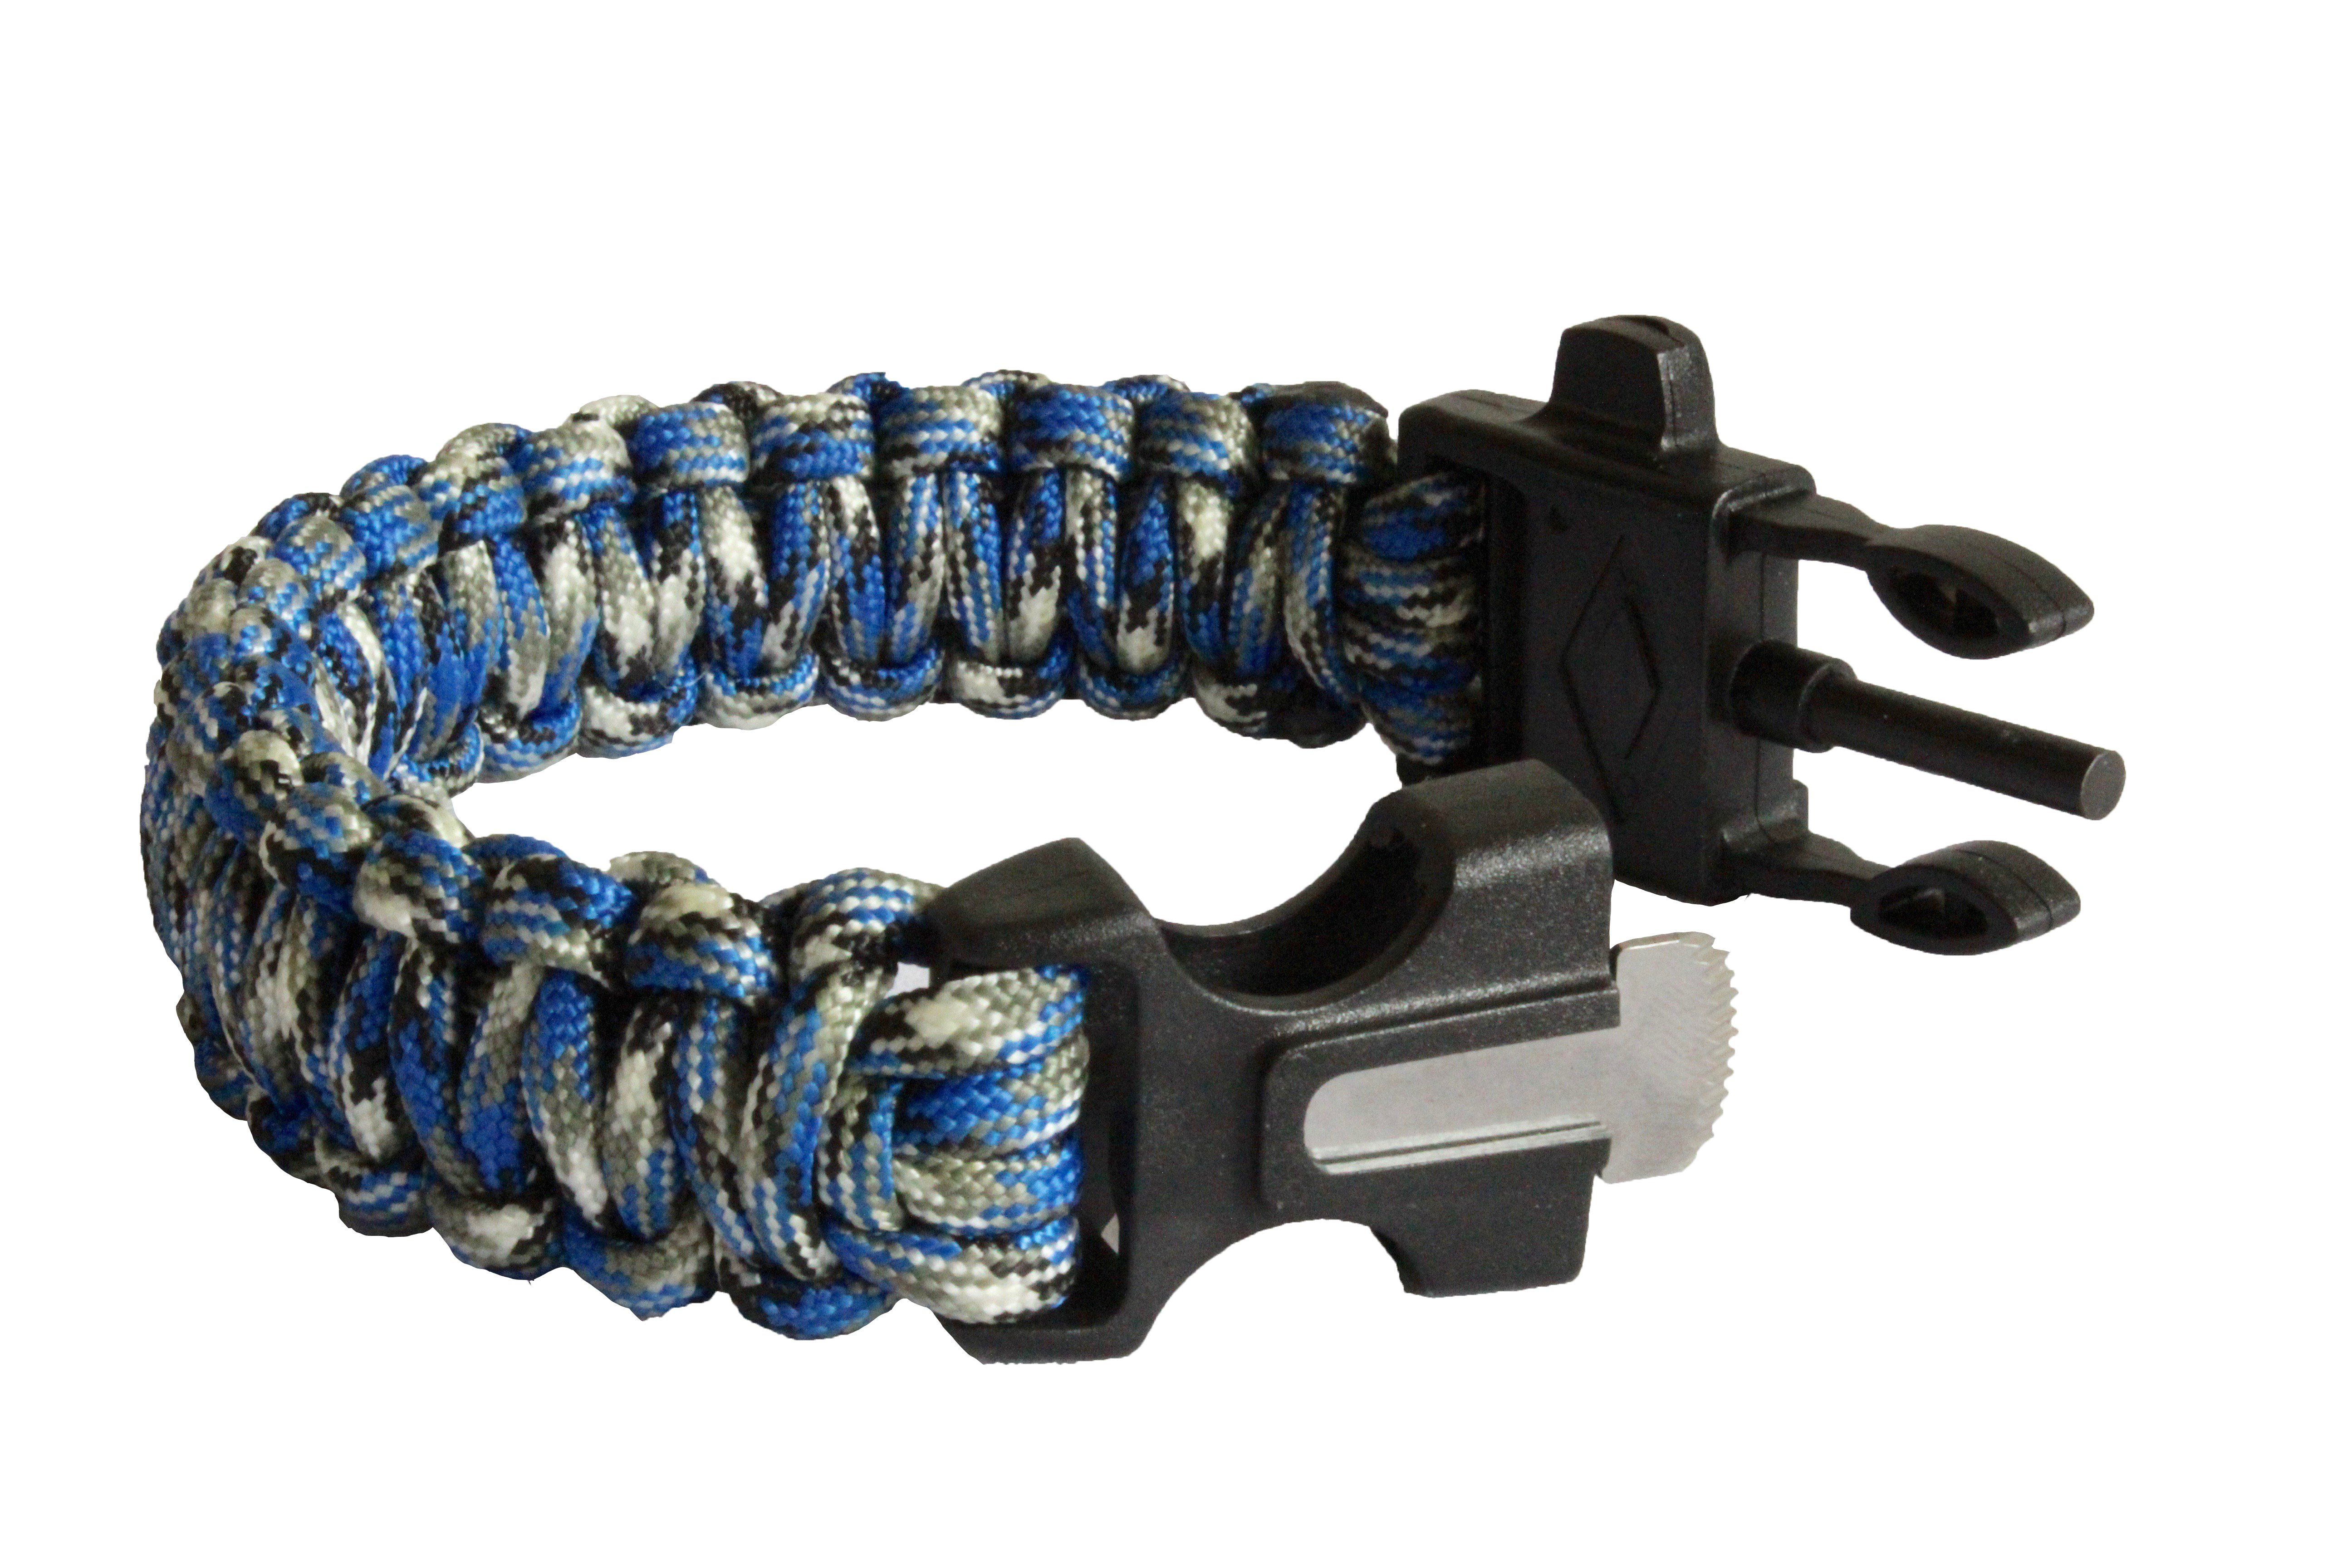 mertlin survival bracelet basic survival gear for outdoor